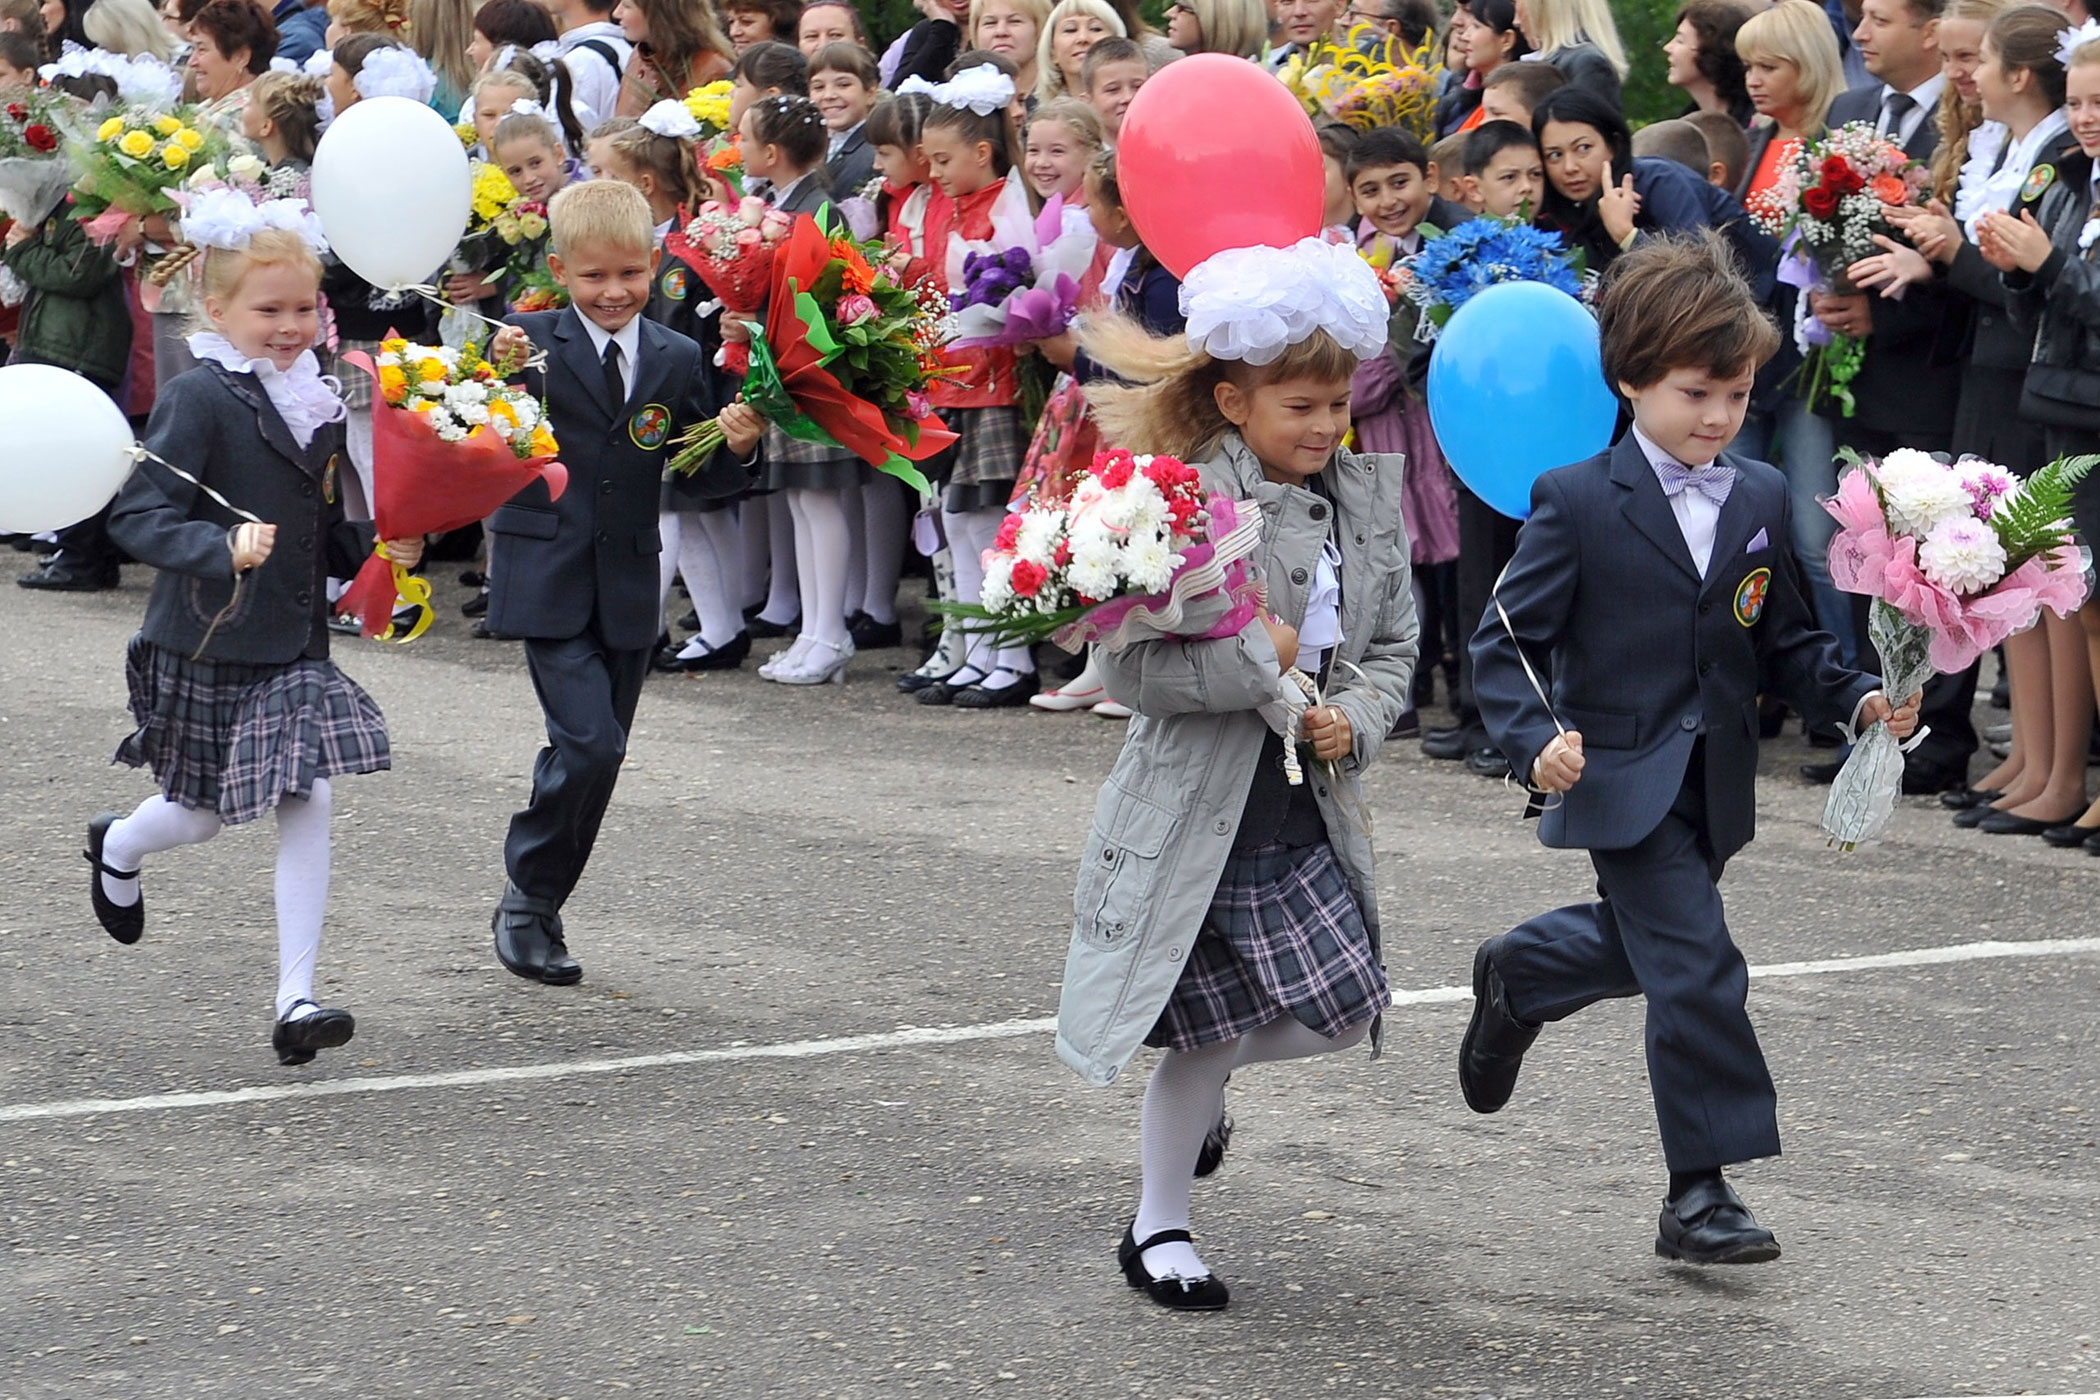 First grade students line up at school during the start of a new school year on Knowledge Day in Ryazan, Russia on Sept. 32, 2014.